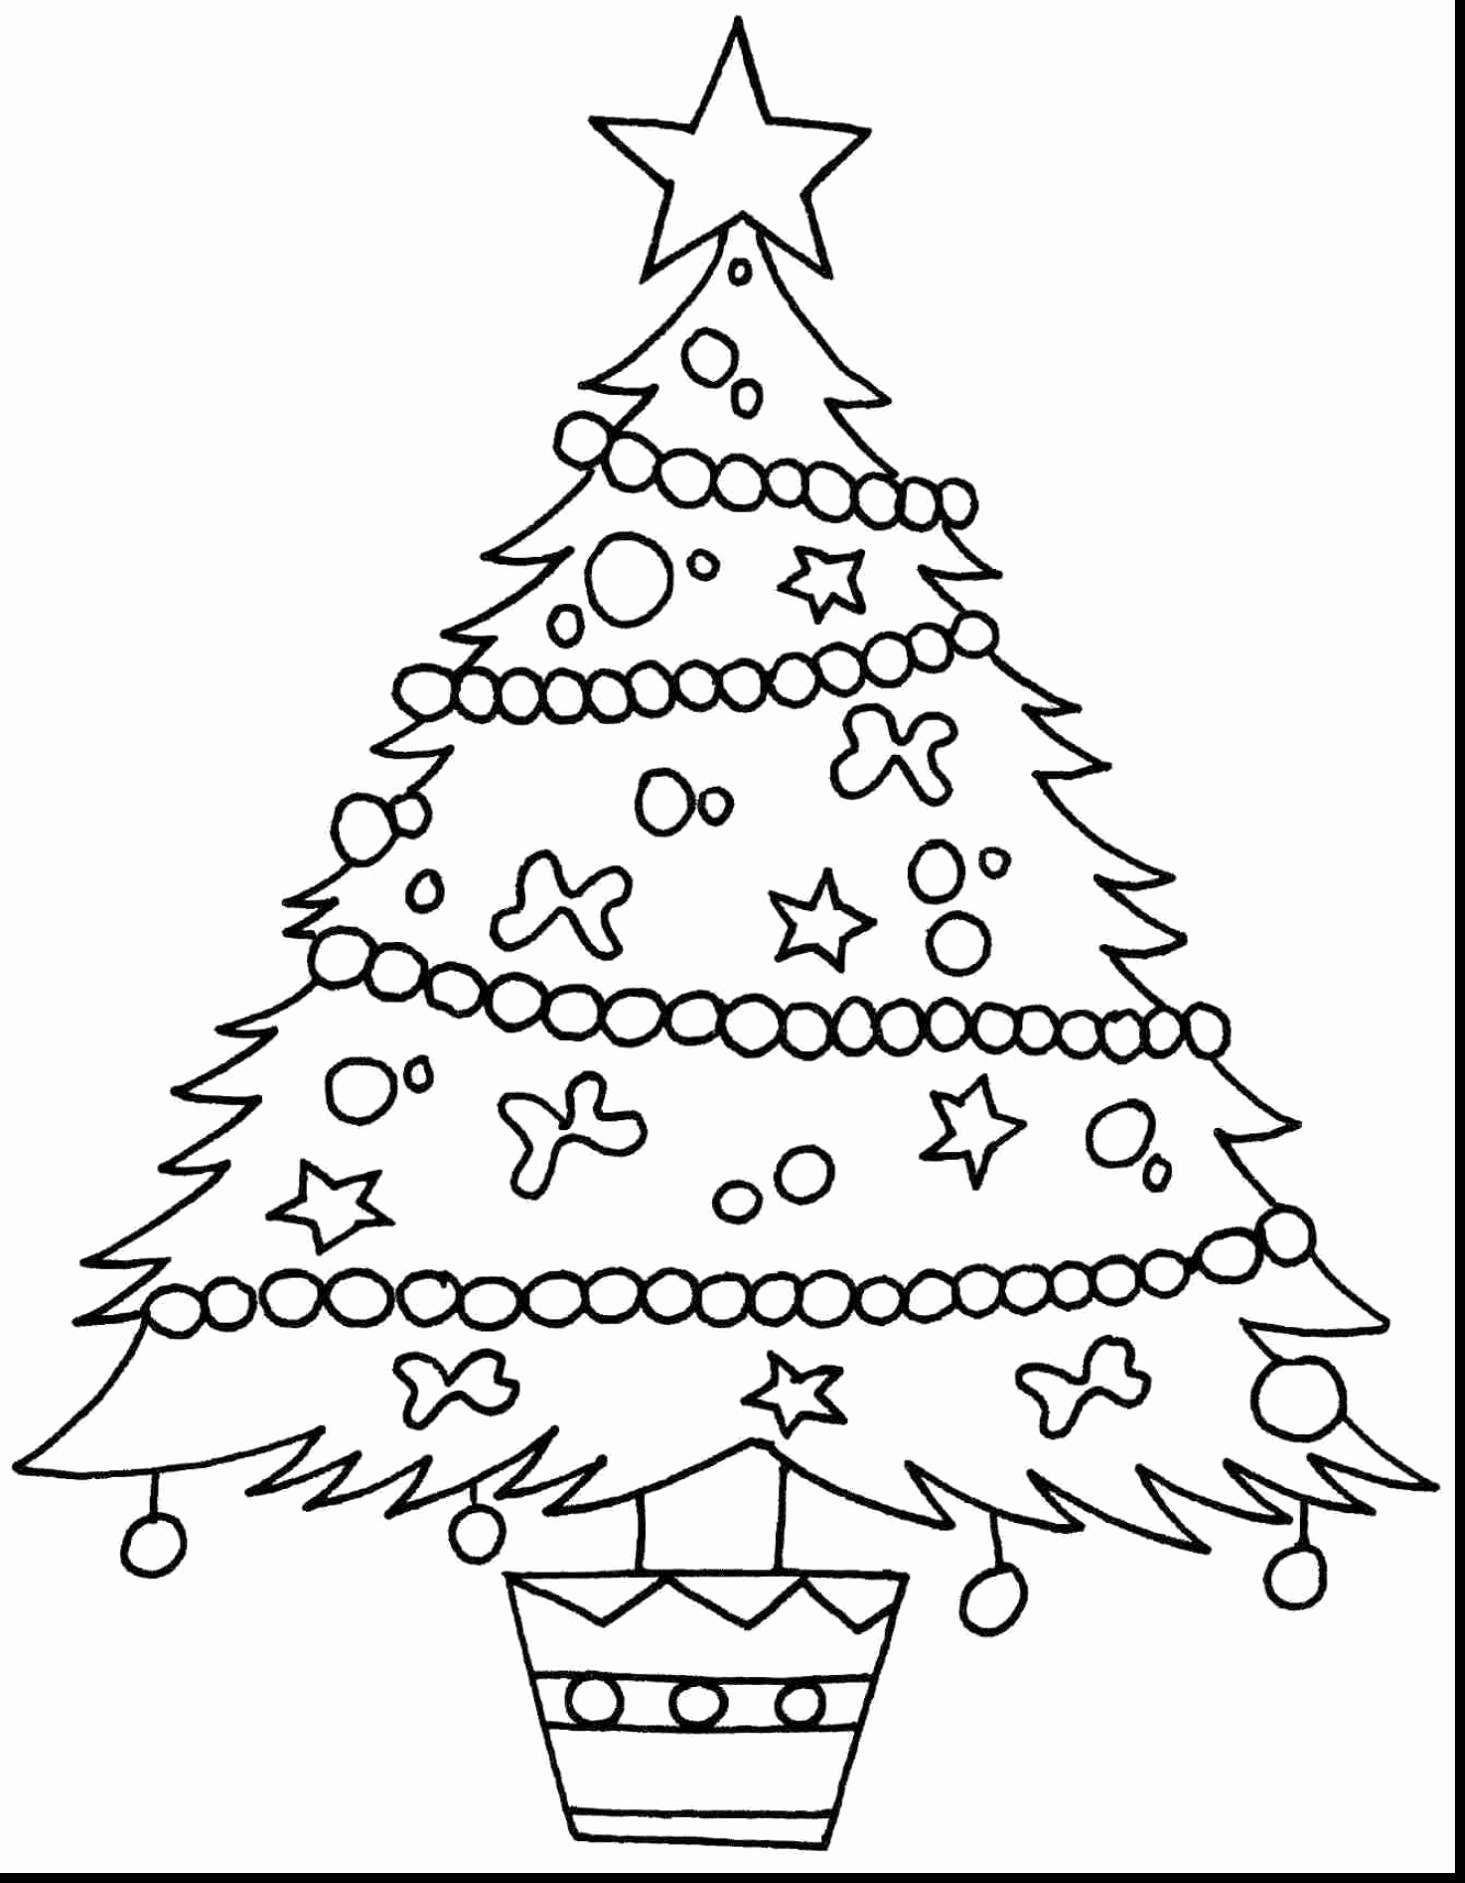 Santa Christmas Tree Coloring Page With Themed Trees Com